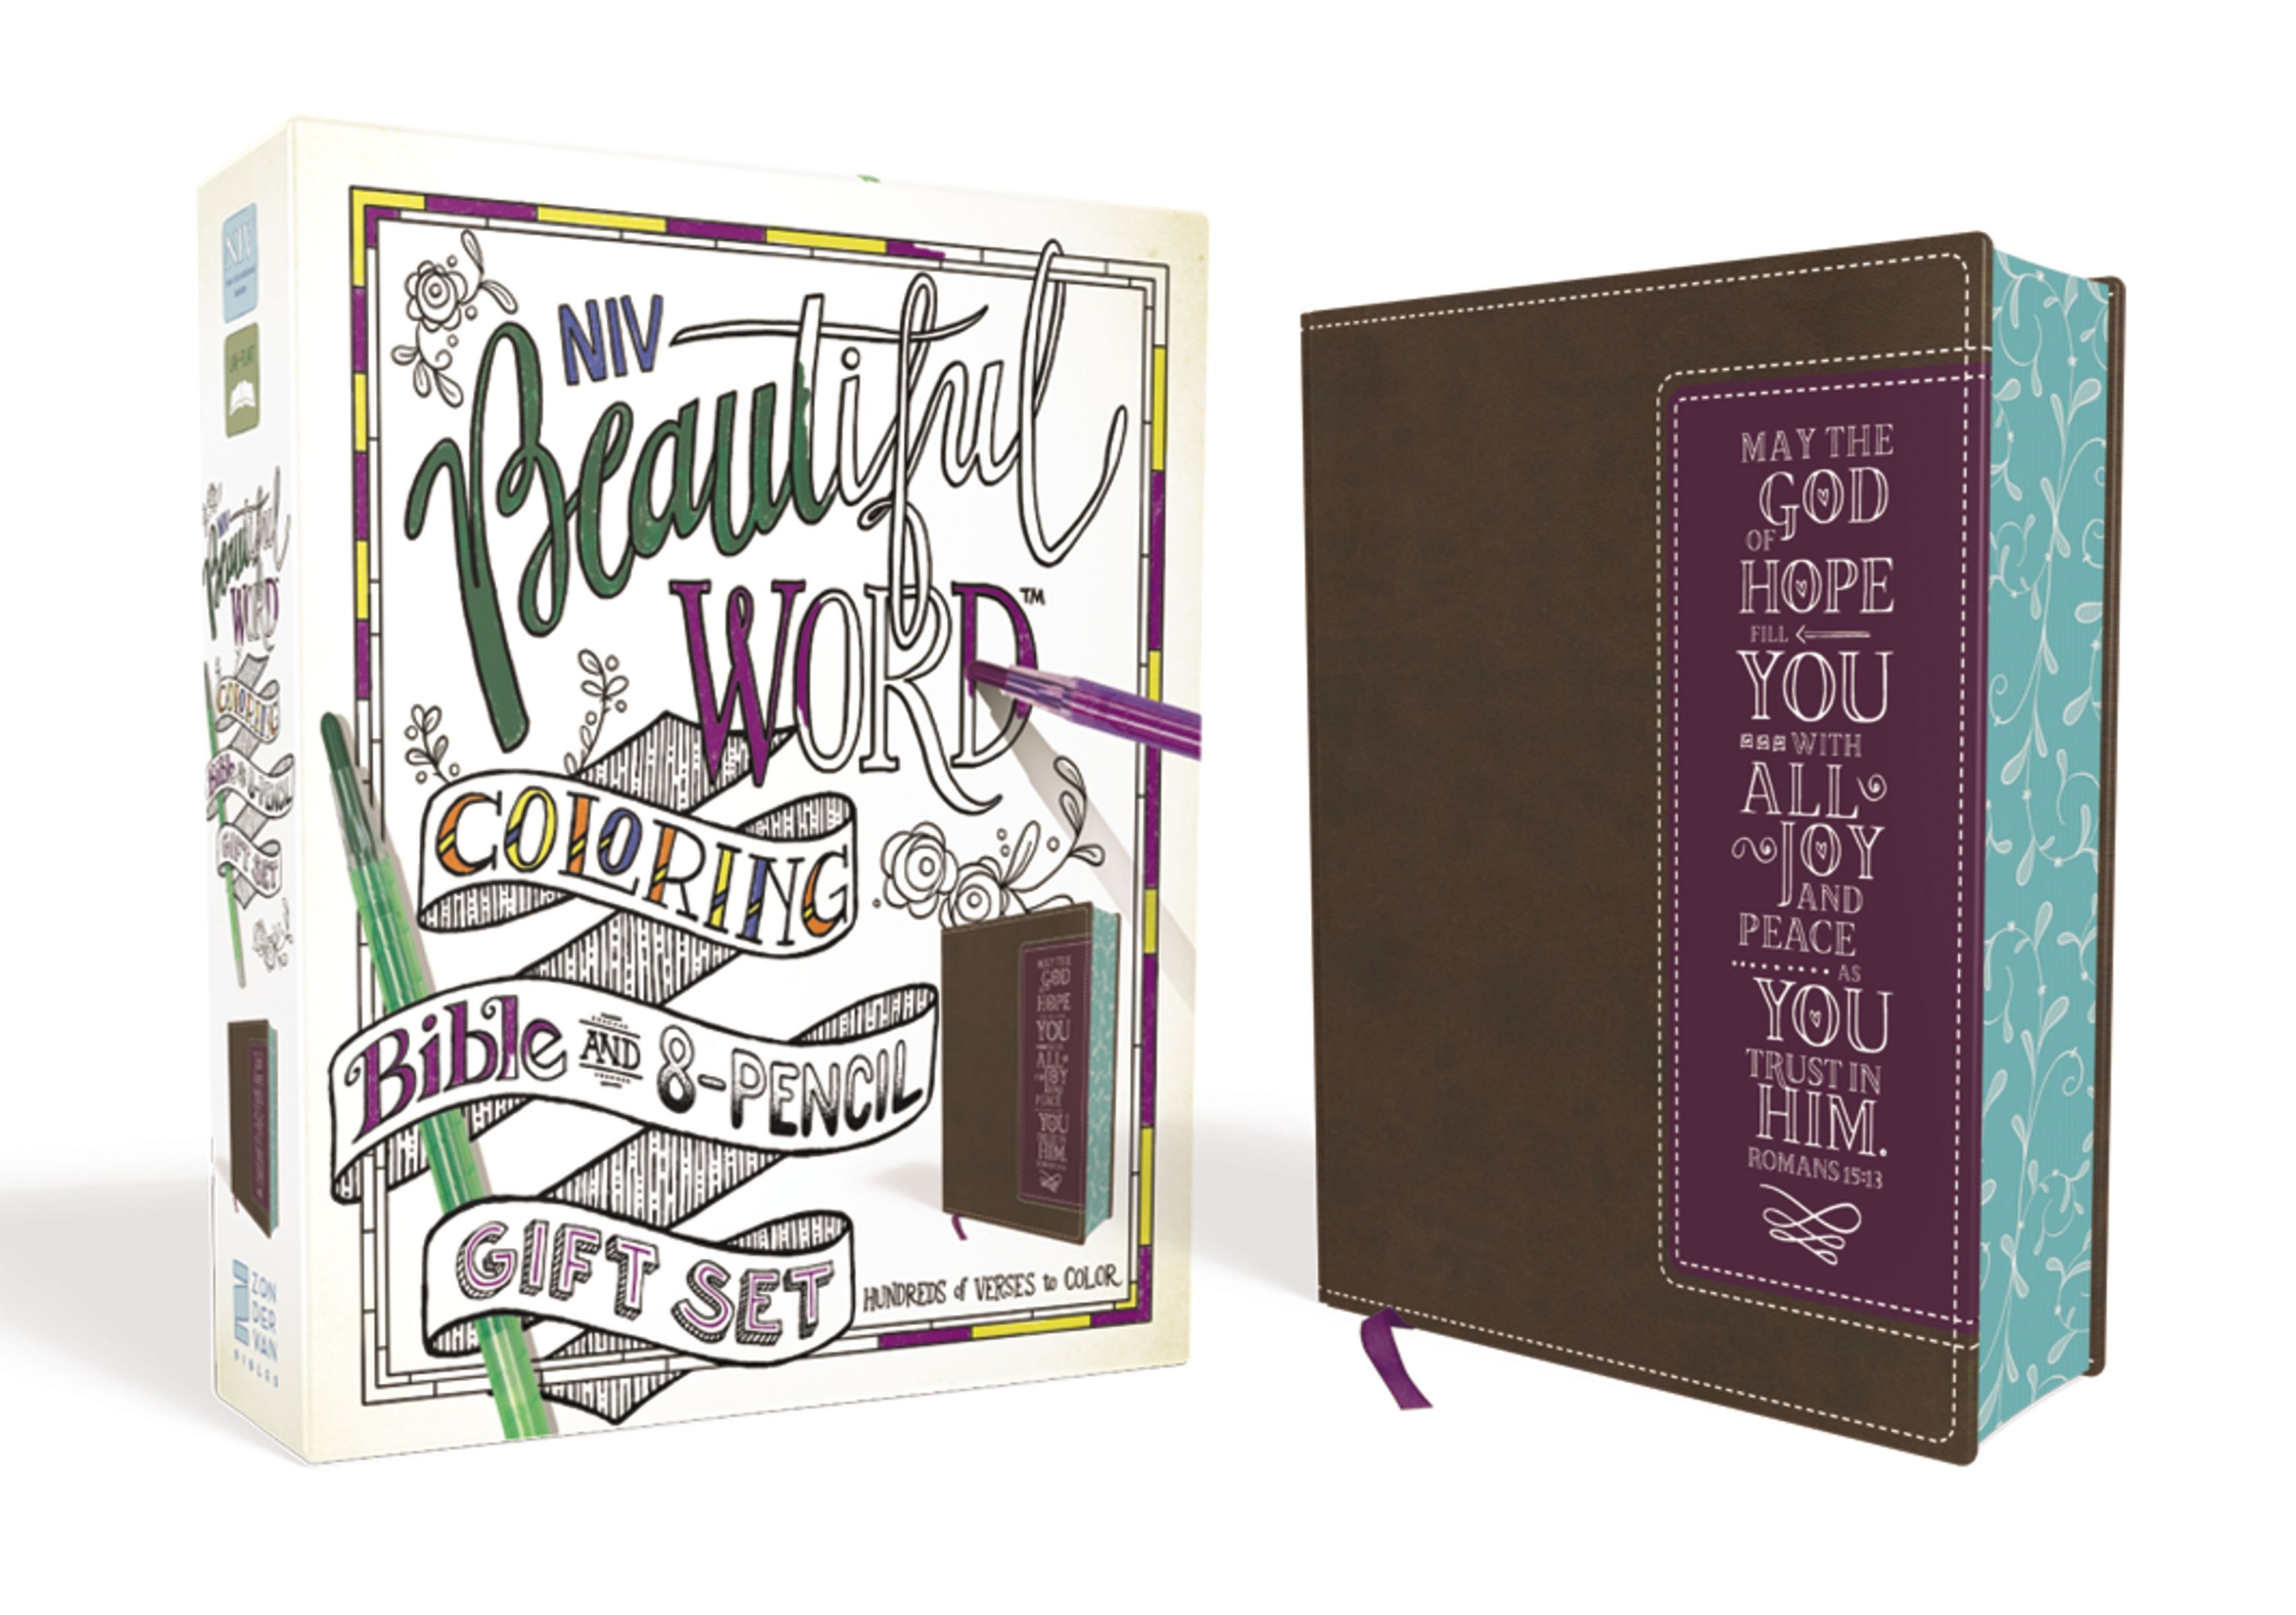 NIV Beautiful Word Coloring Bible And 8-Pencil Gift Set-Brown/Purple Leathersoft